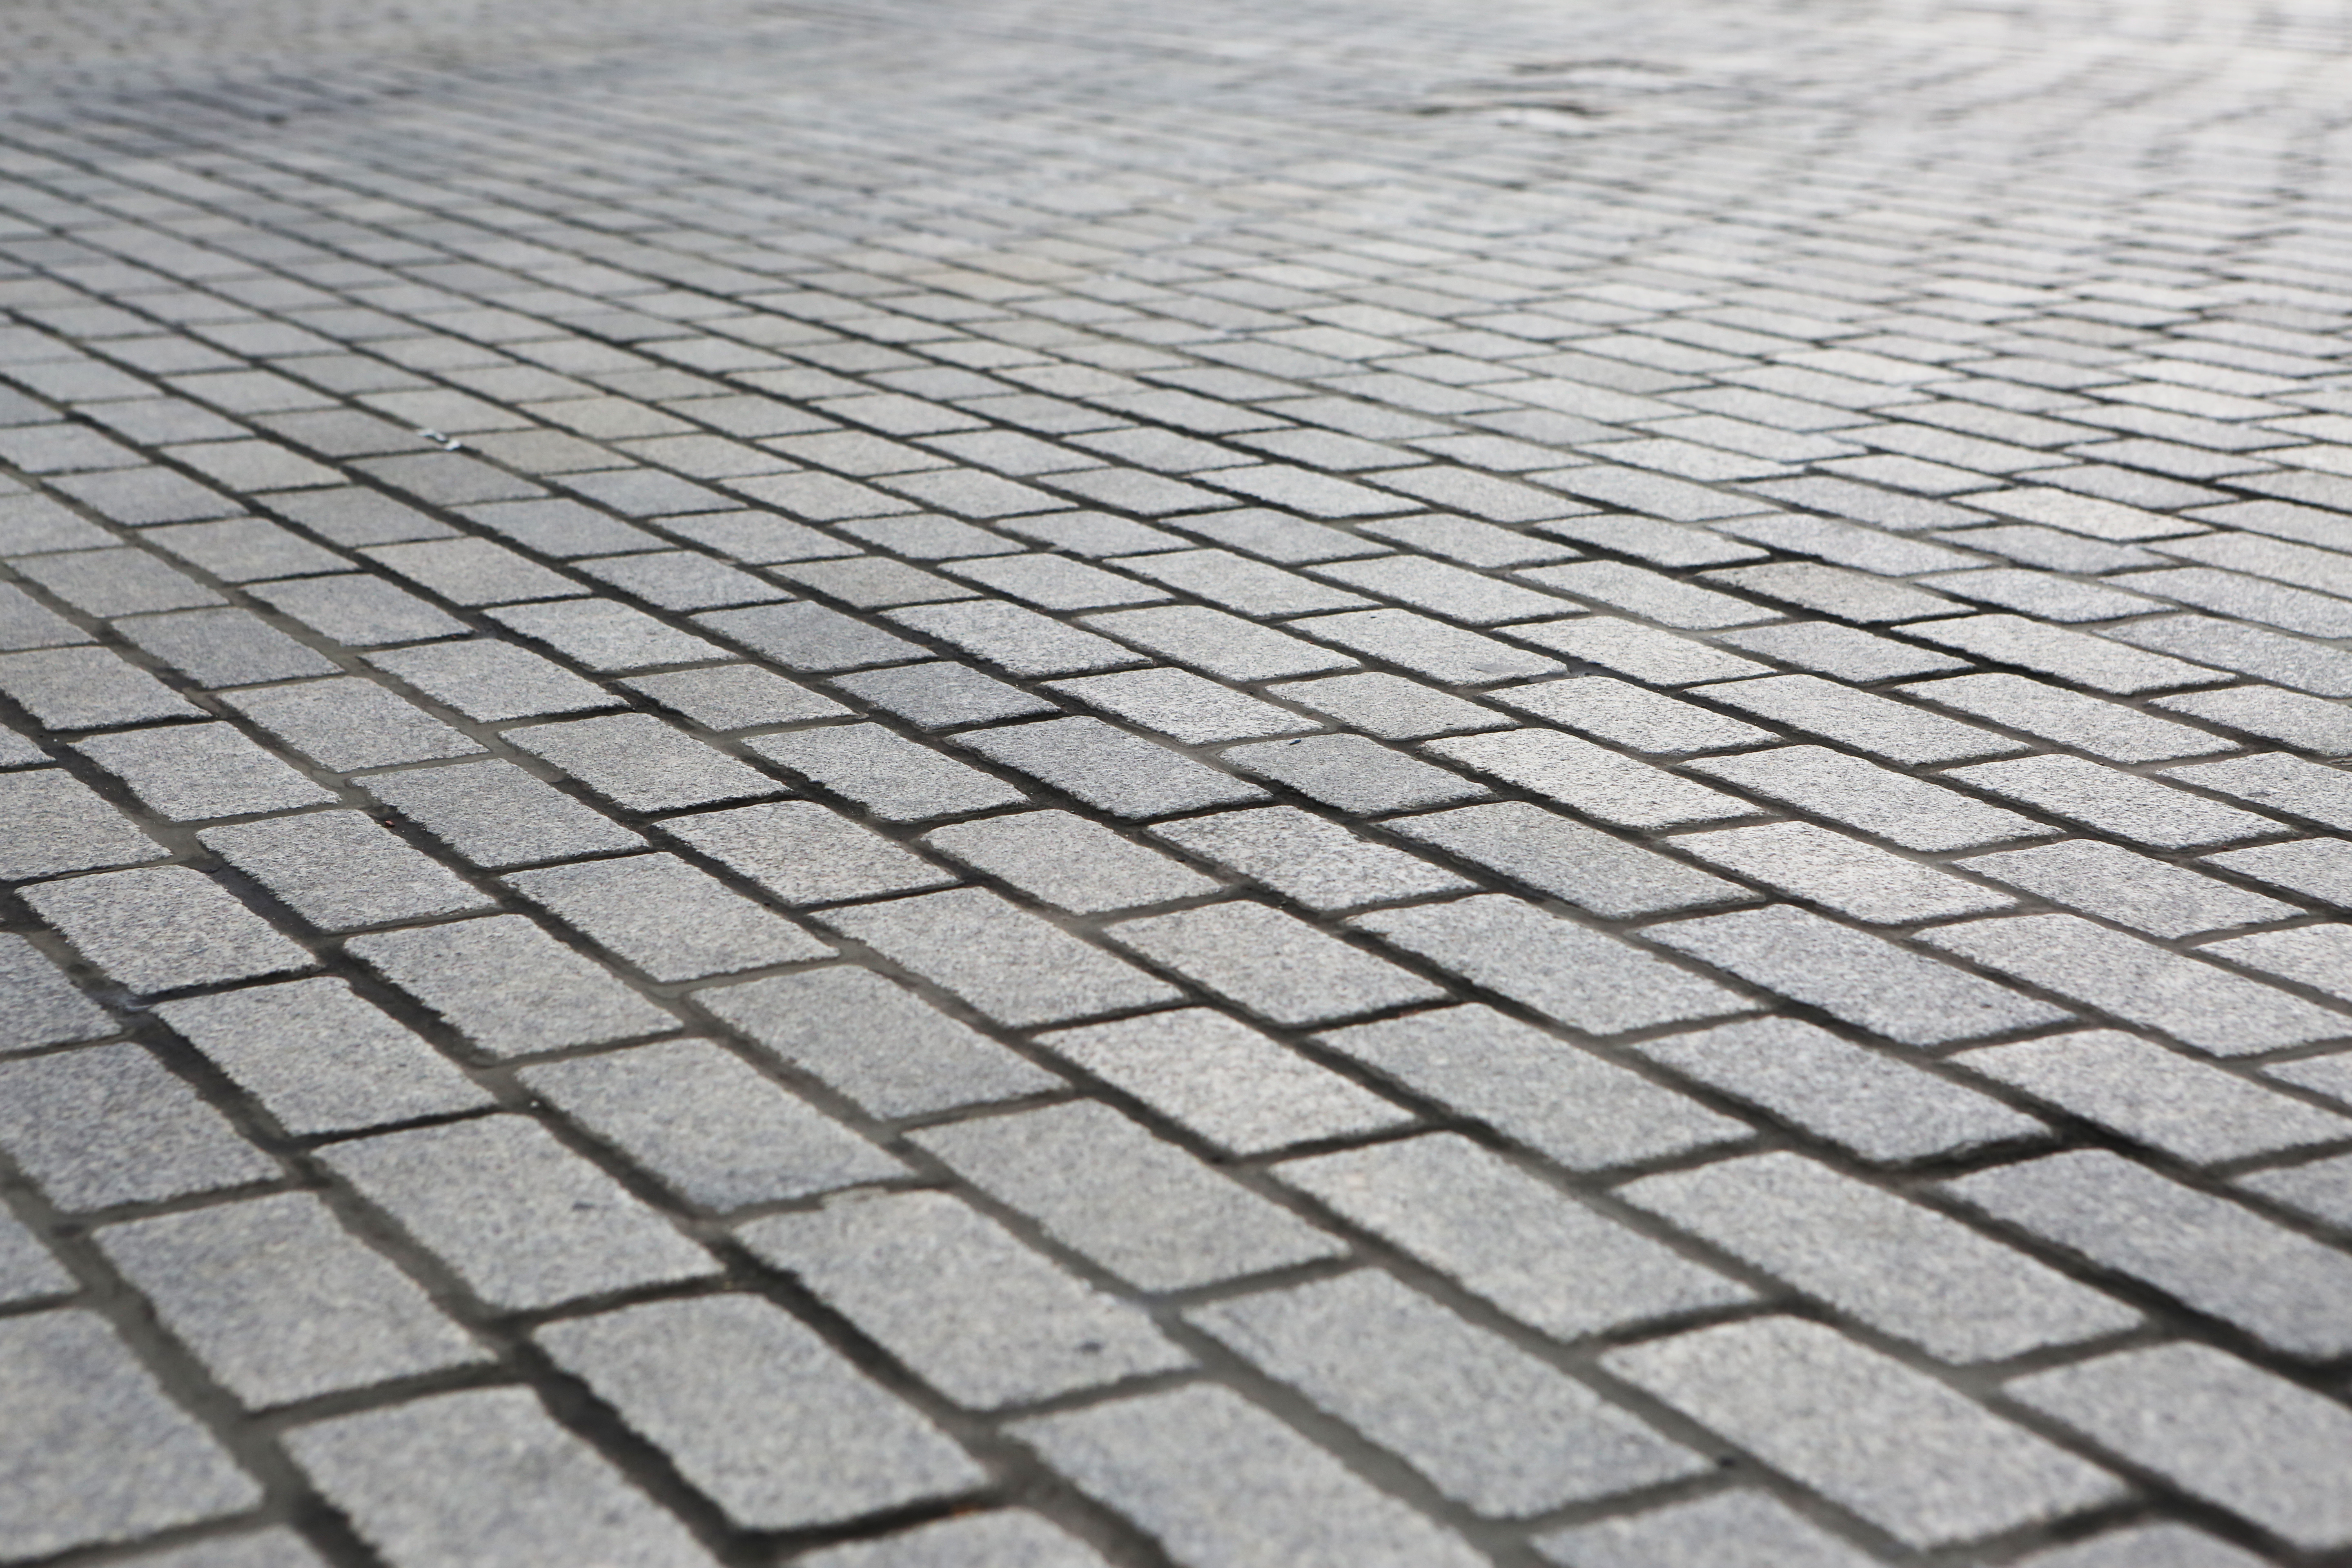 Stone Pavement In Paris : Road texture free stock photos life of pix